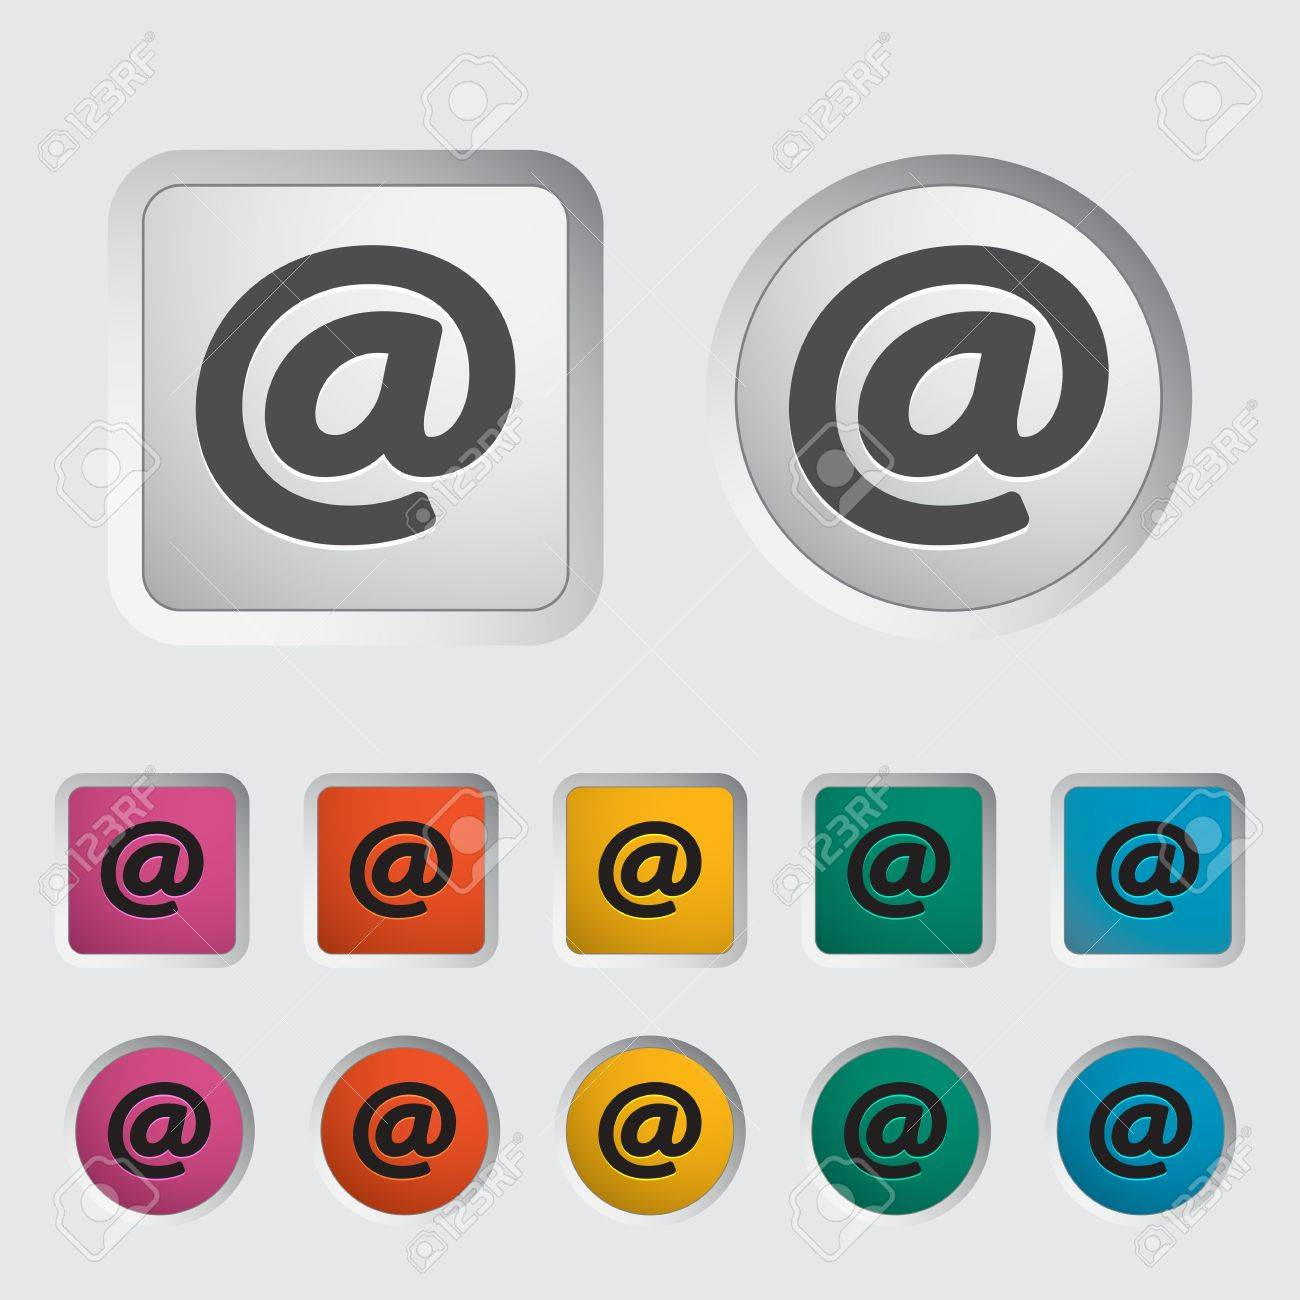 Email single icon  Vector illustration Stock Vector - 16786755